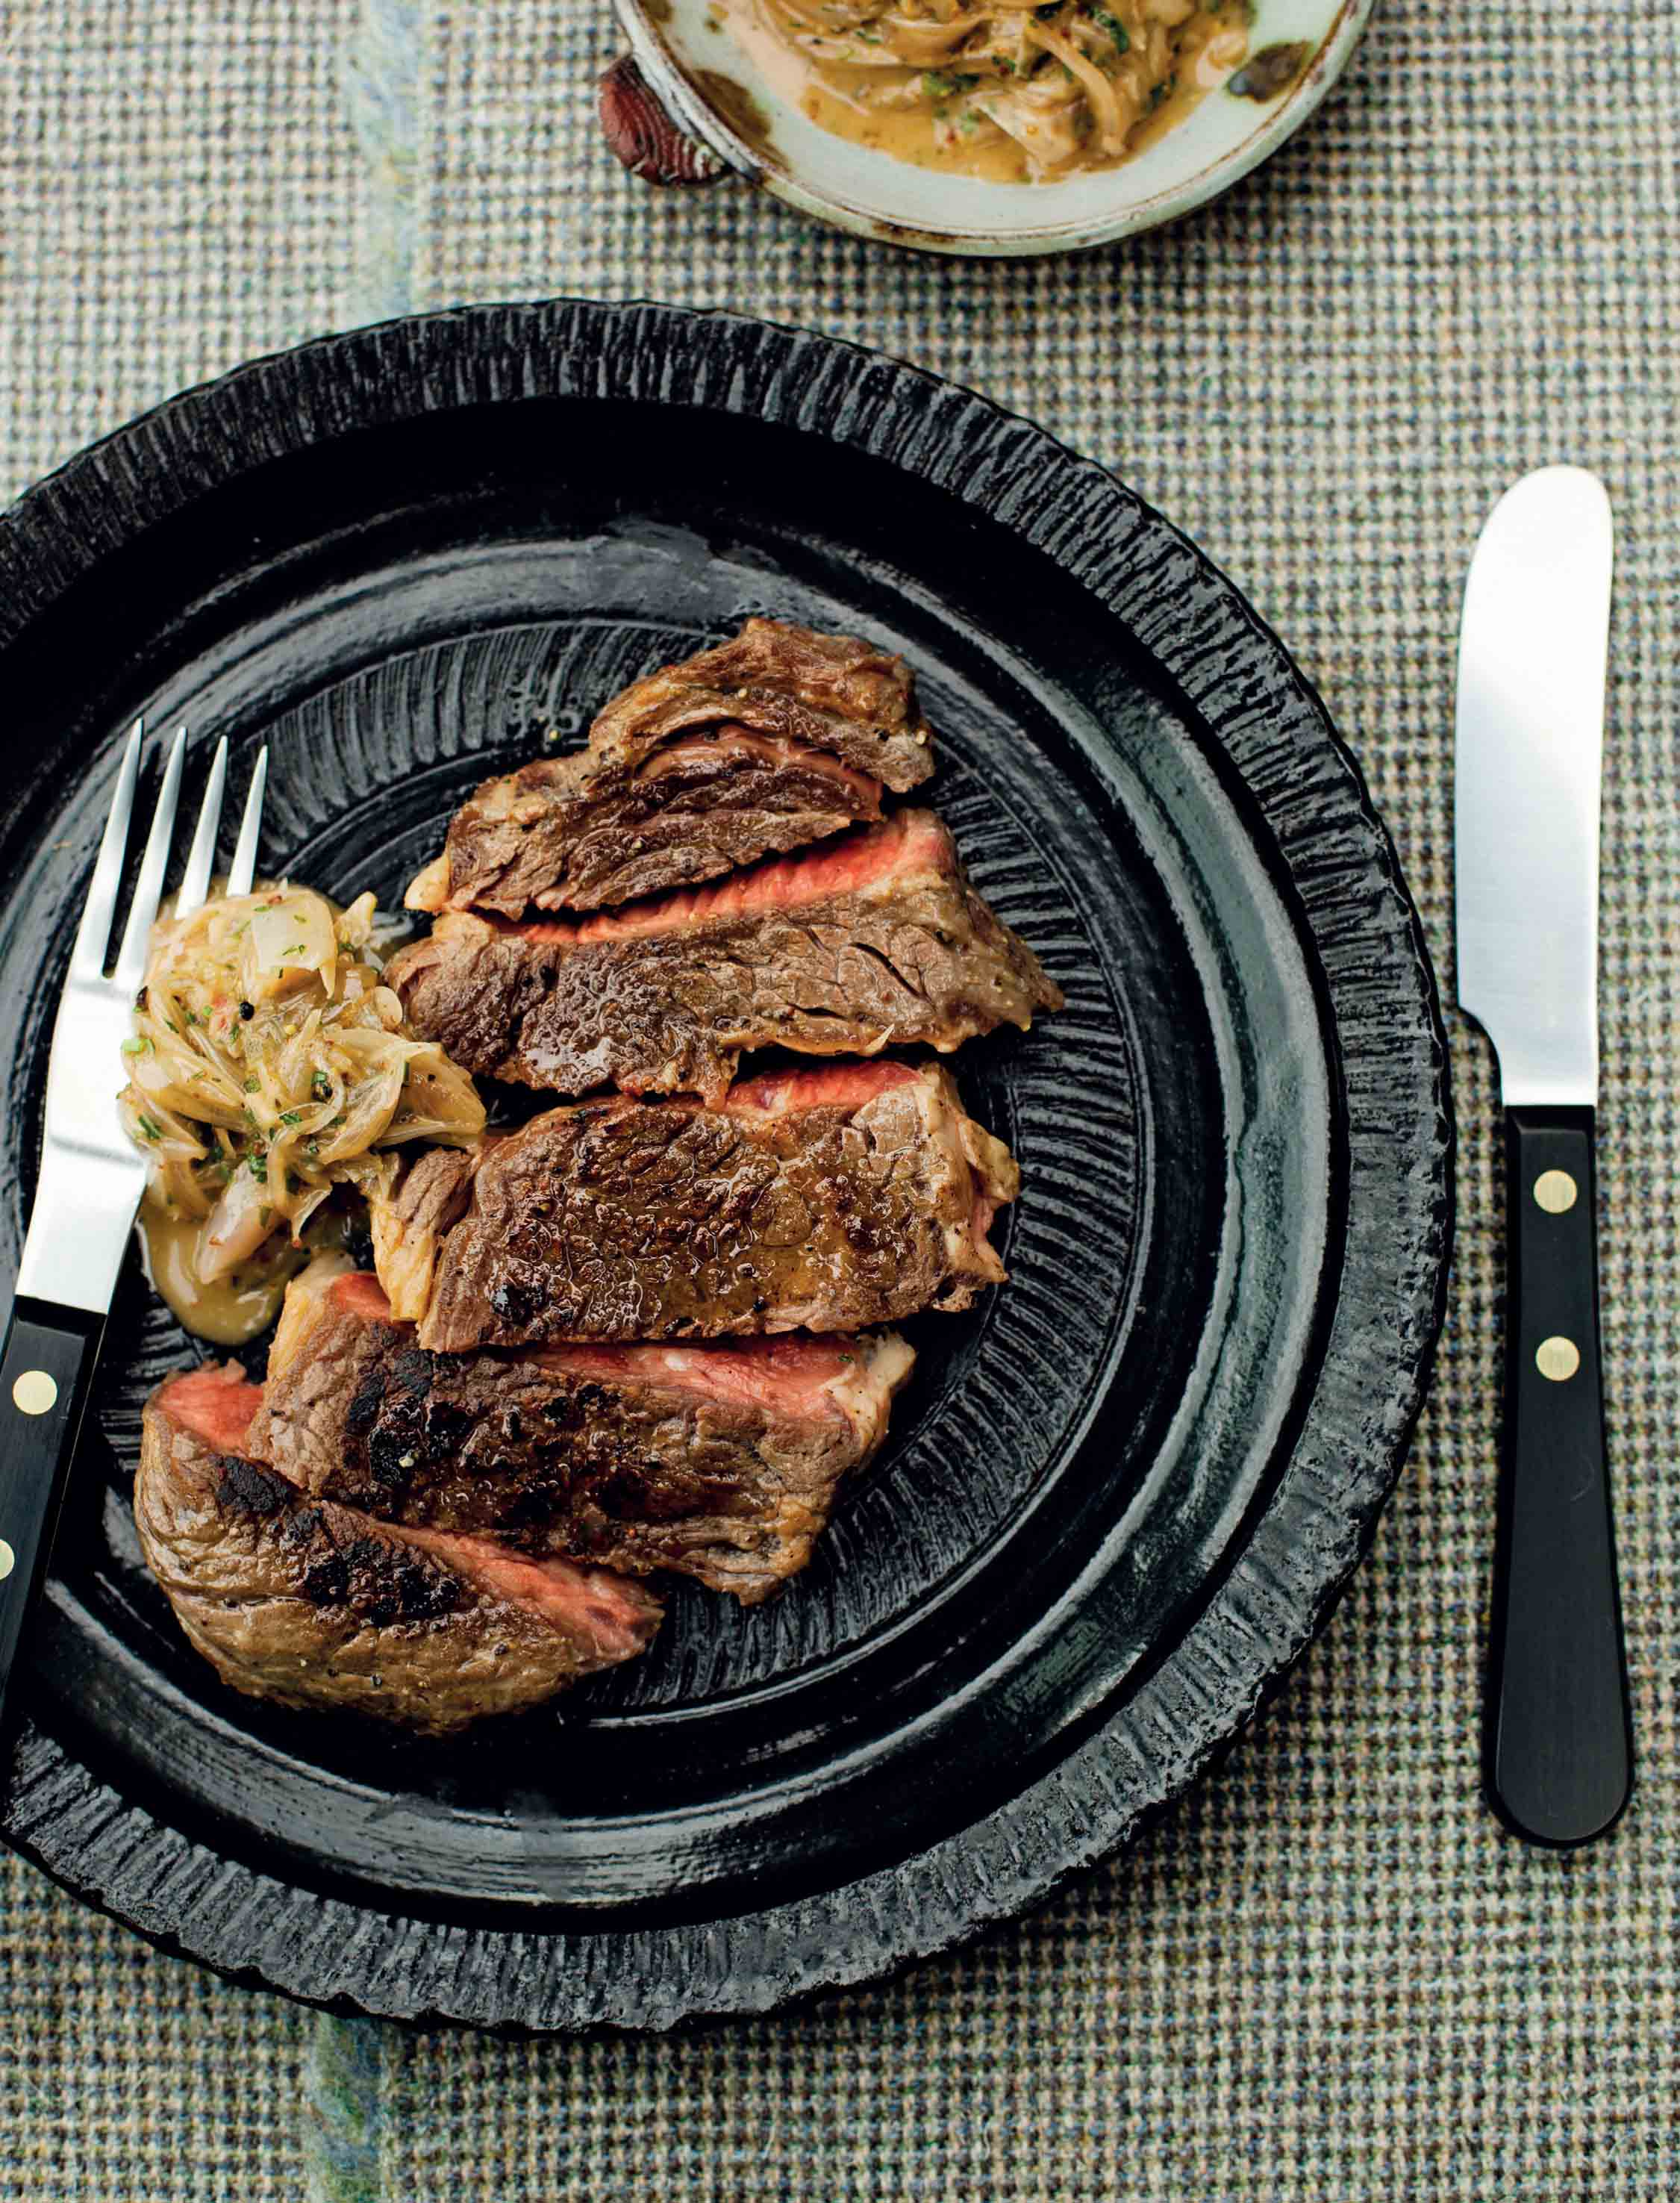 Rib-eye steak with shallot and parsley marmalade